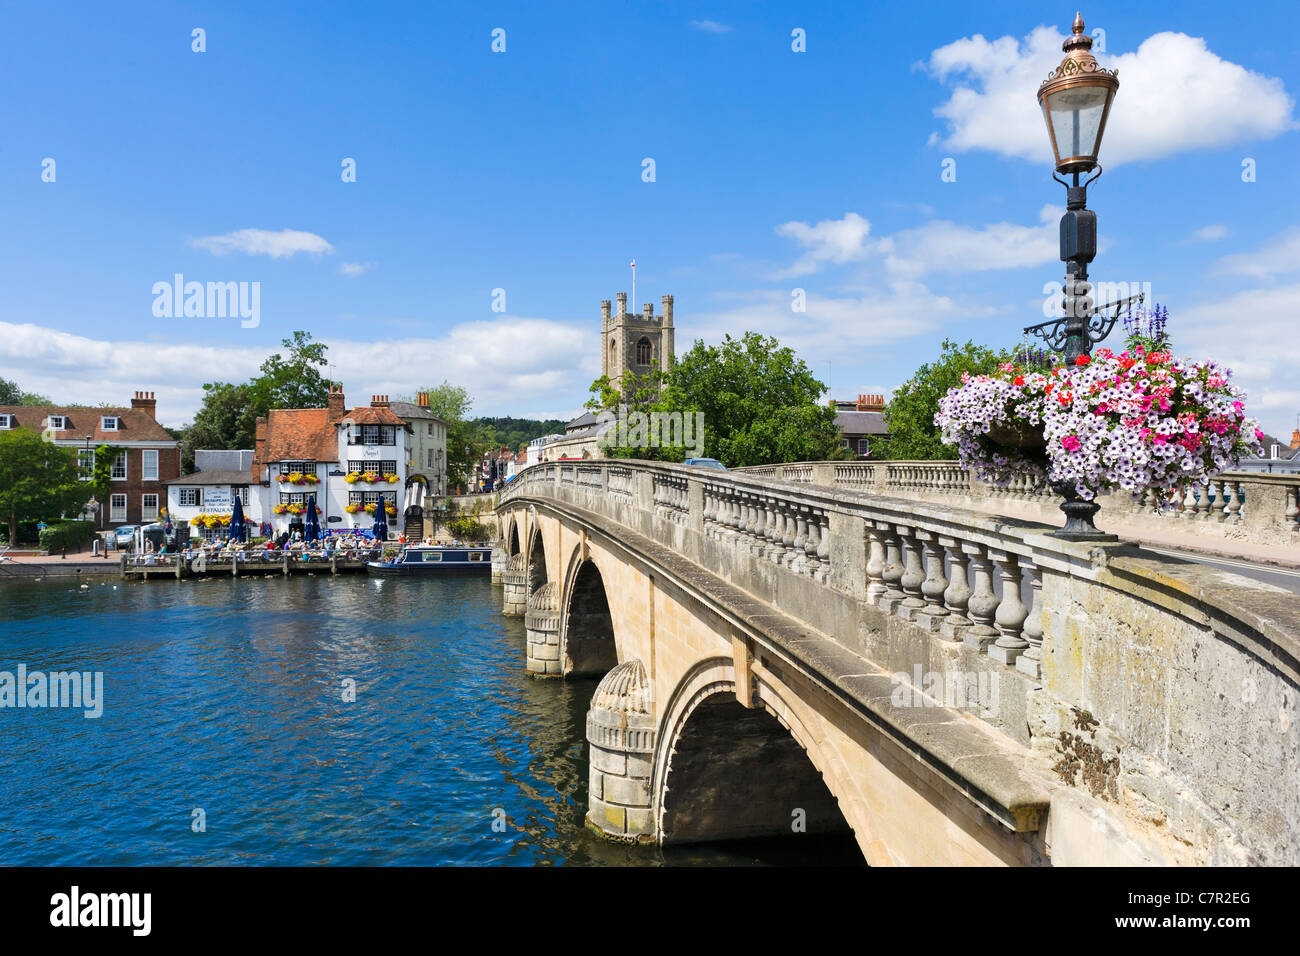 Bridge over the River Thames at Henley-on-Thames, Oxfordshire, England, UK - Stock Image